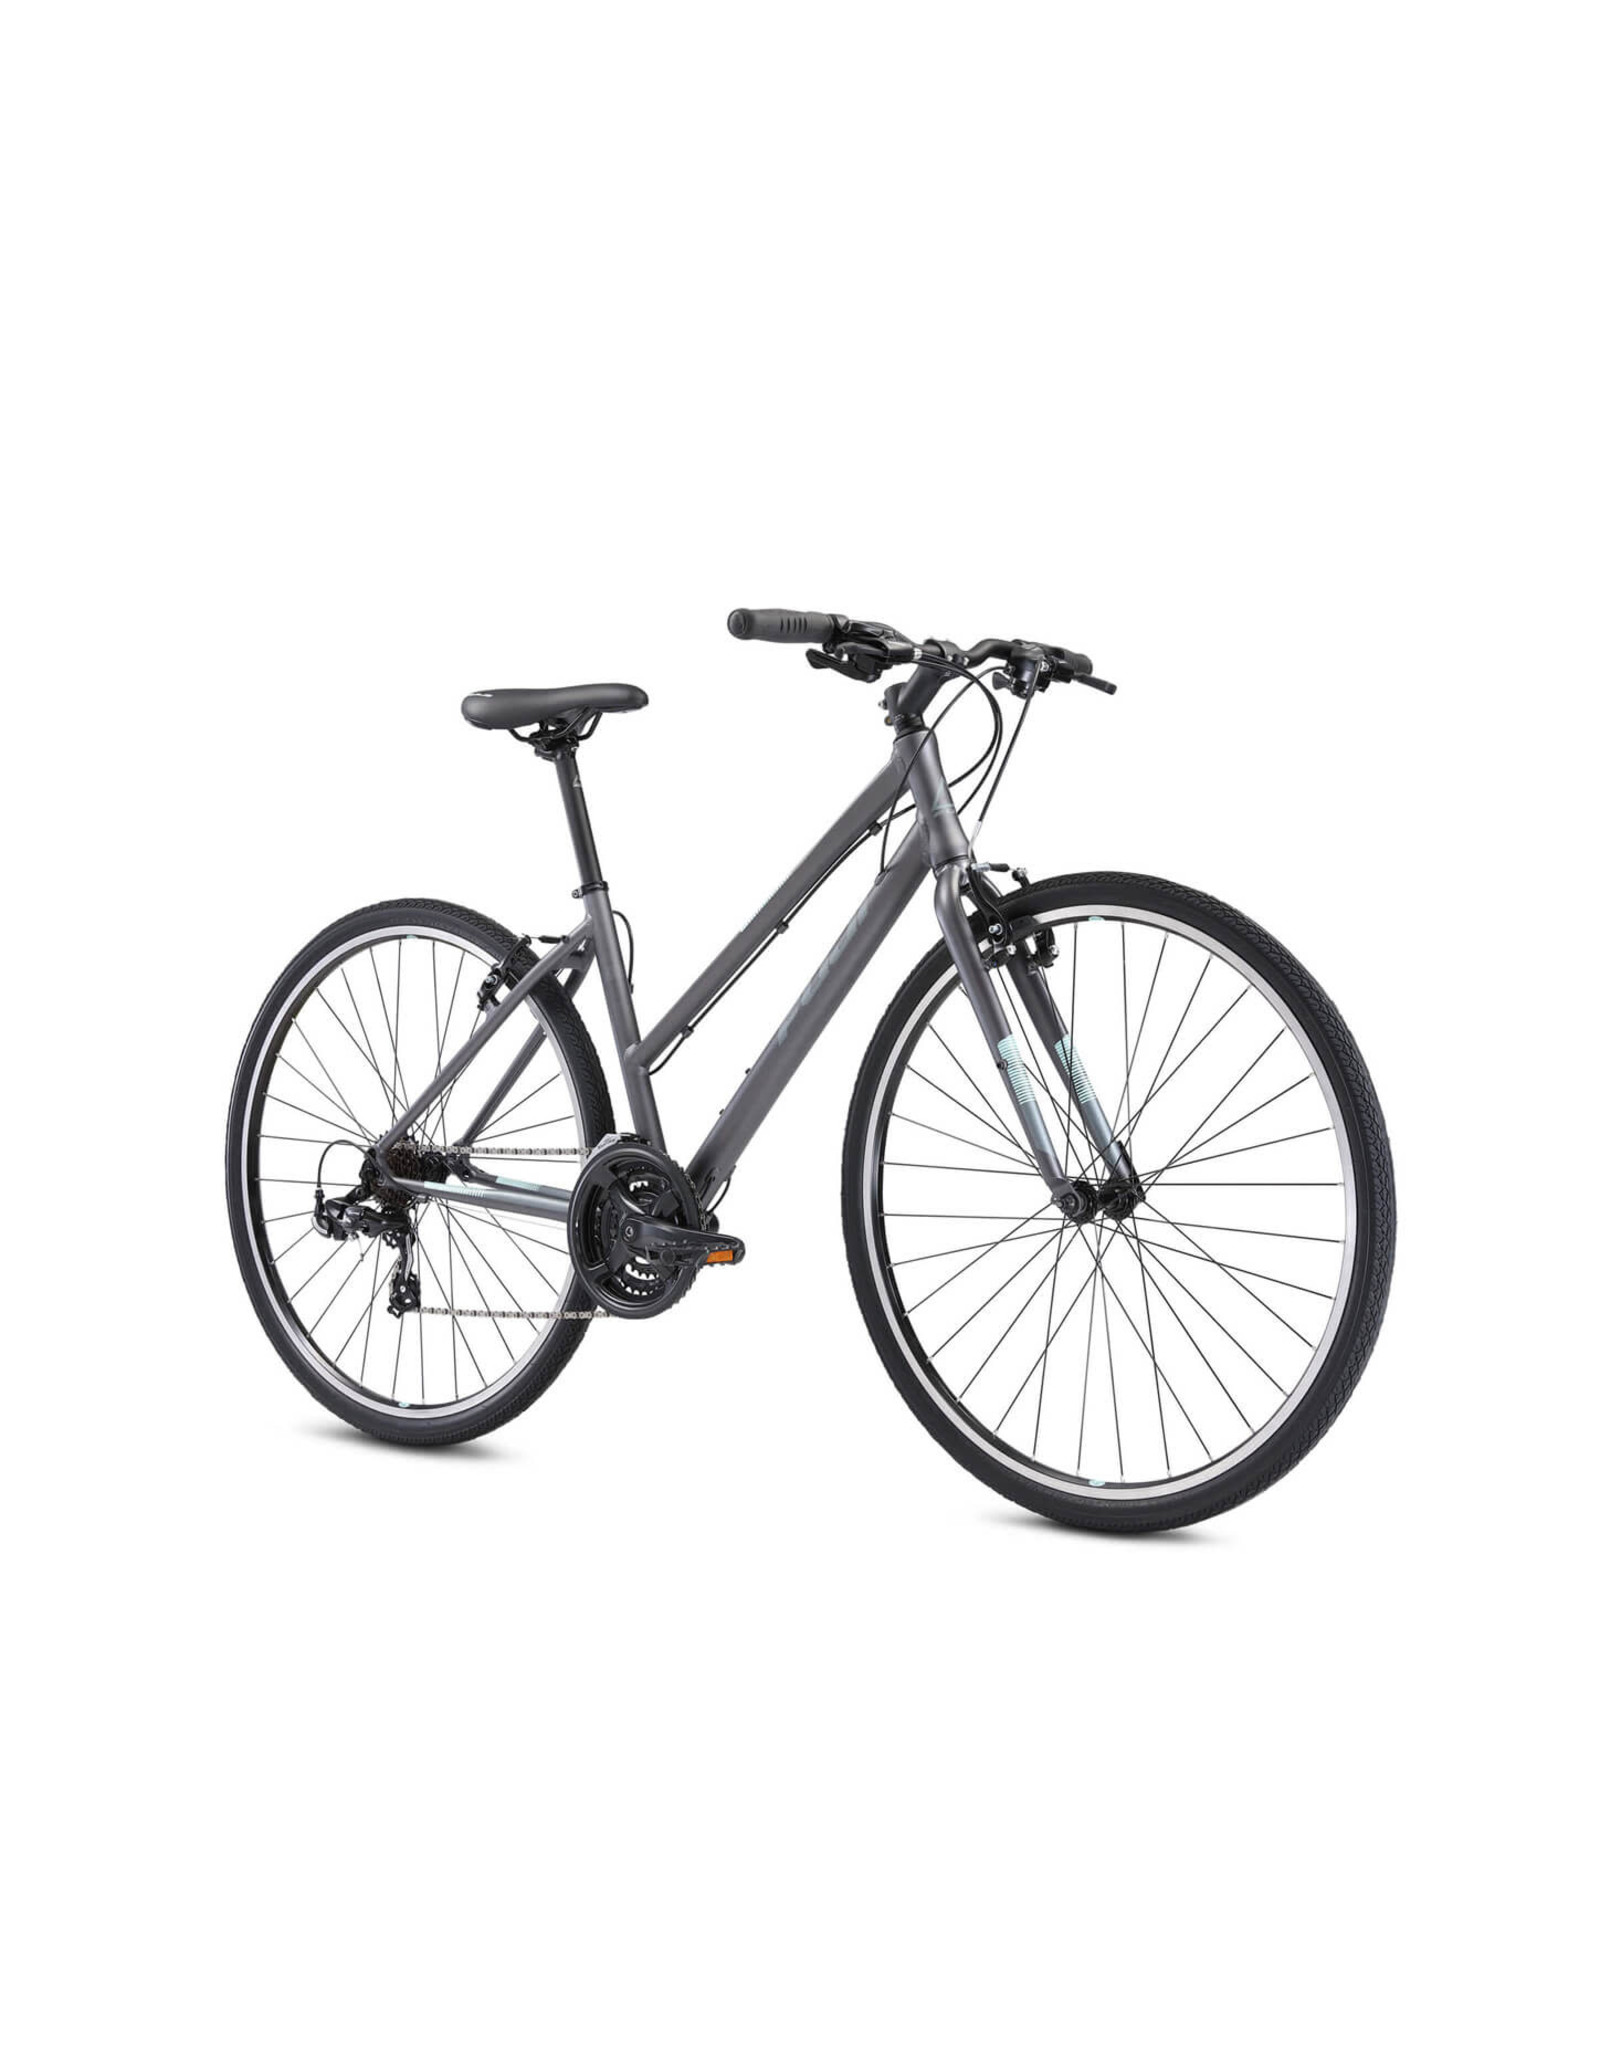 Fuji FUJI ABSOLUTE 2.1 ST SATIN GRAPHITE HYBRIDE BIKE 21